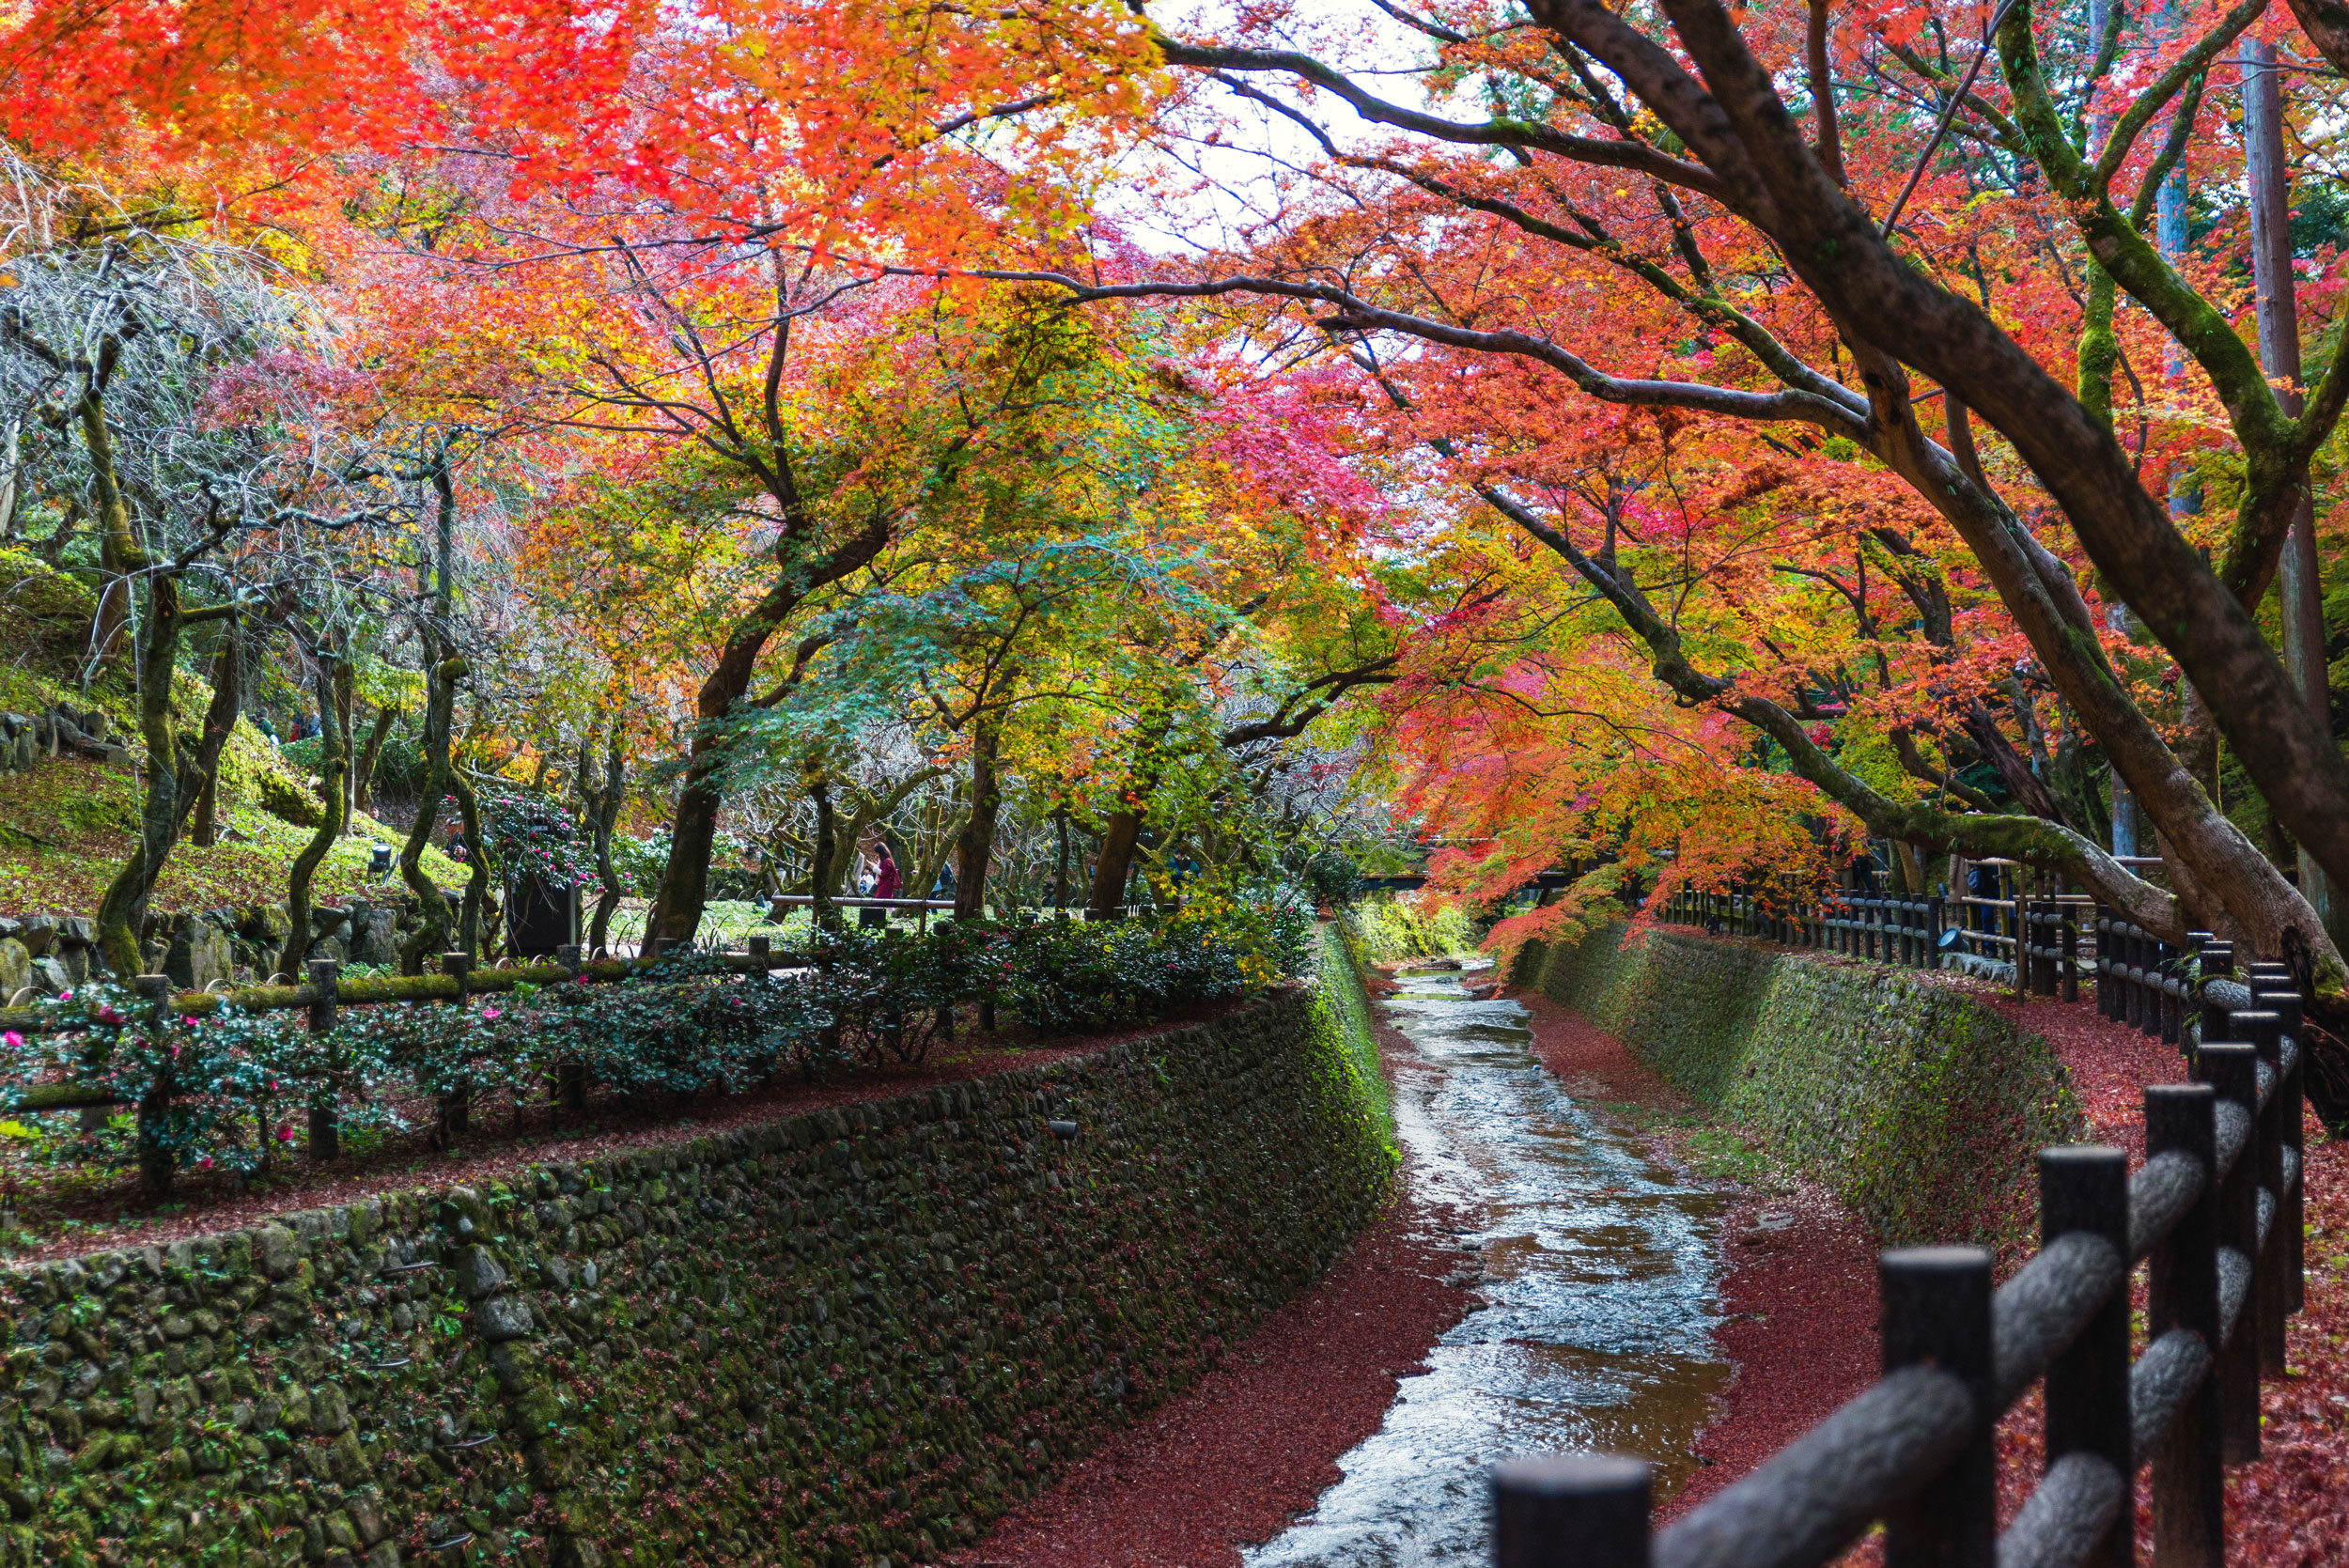 Fall leaves over a canal near Kitano Tenmangu in Kyoto